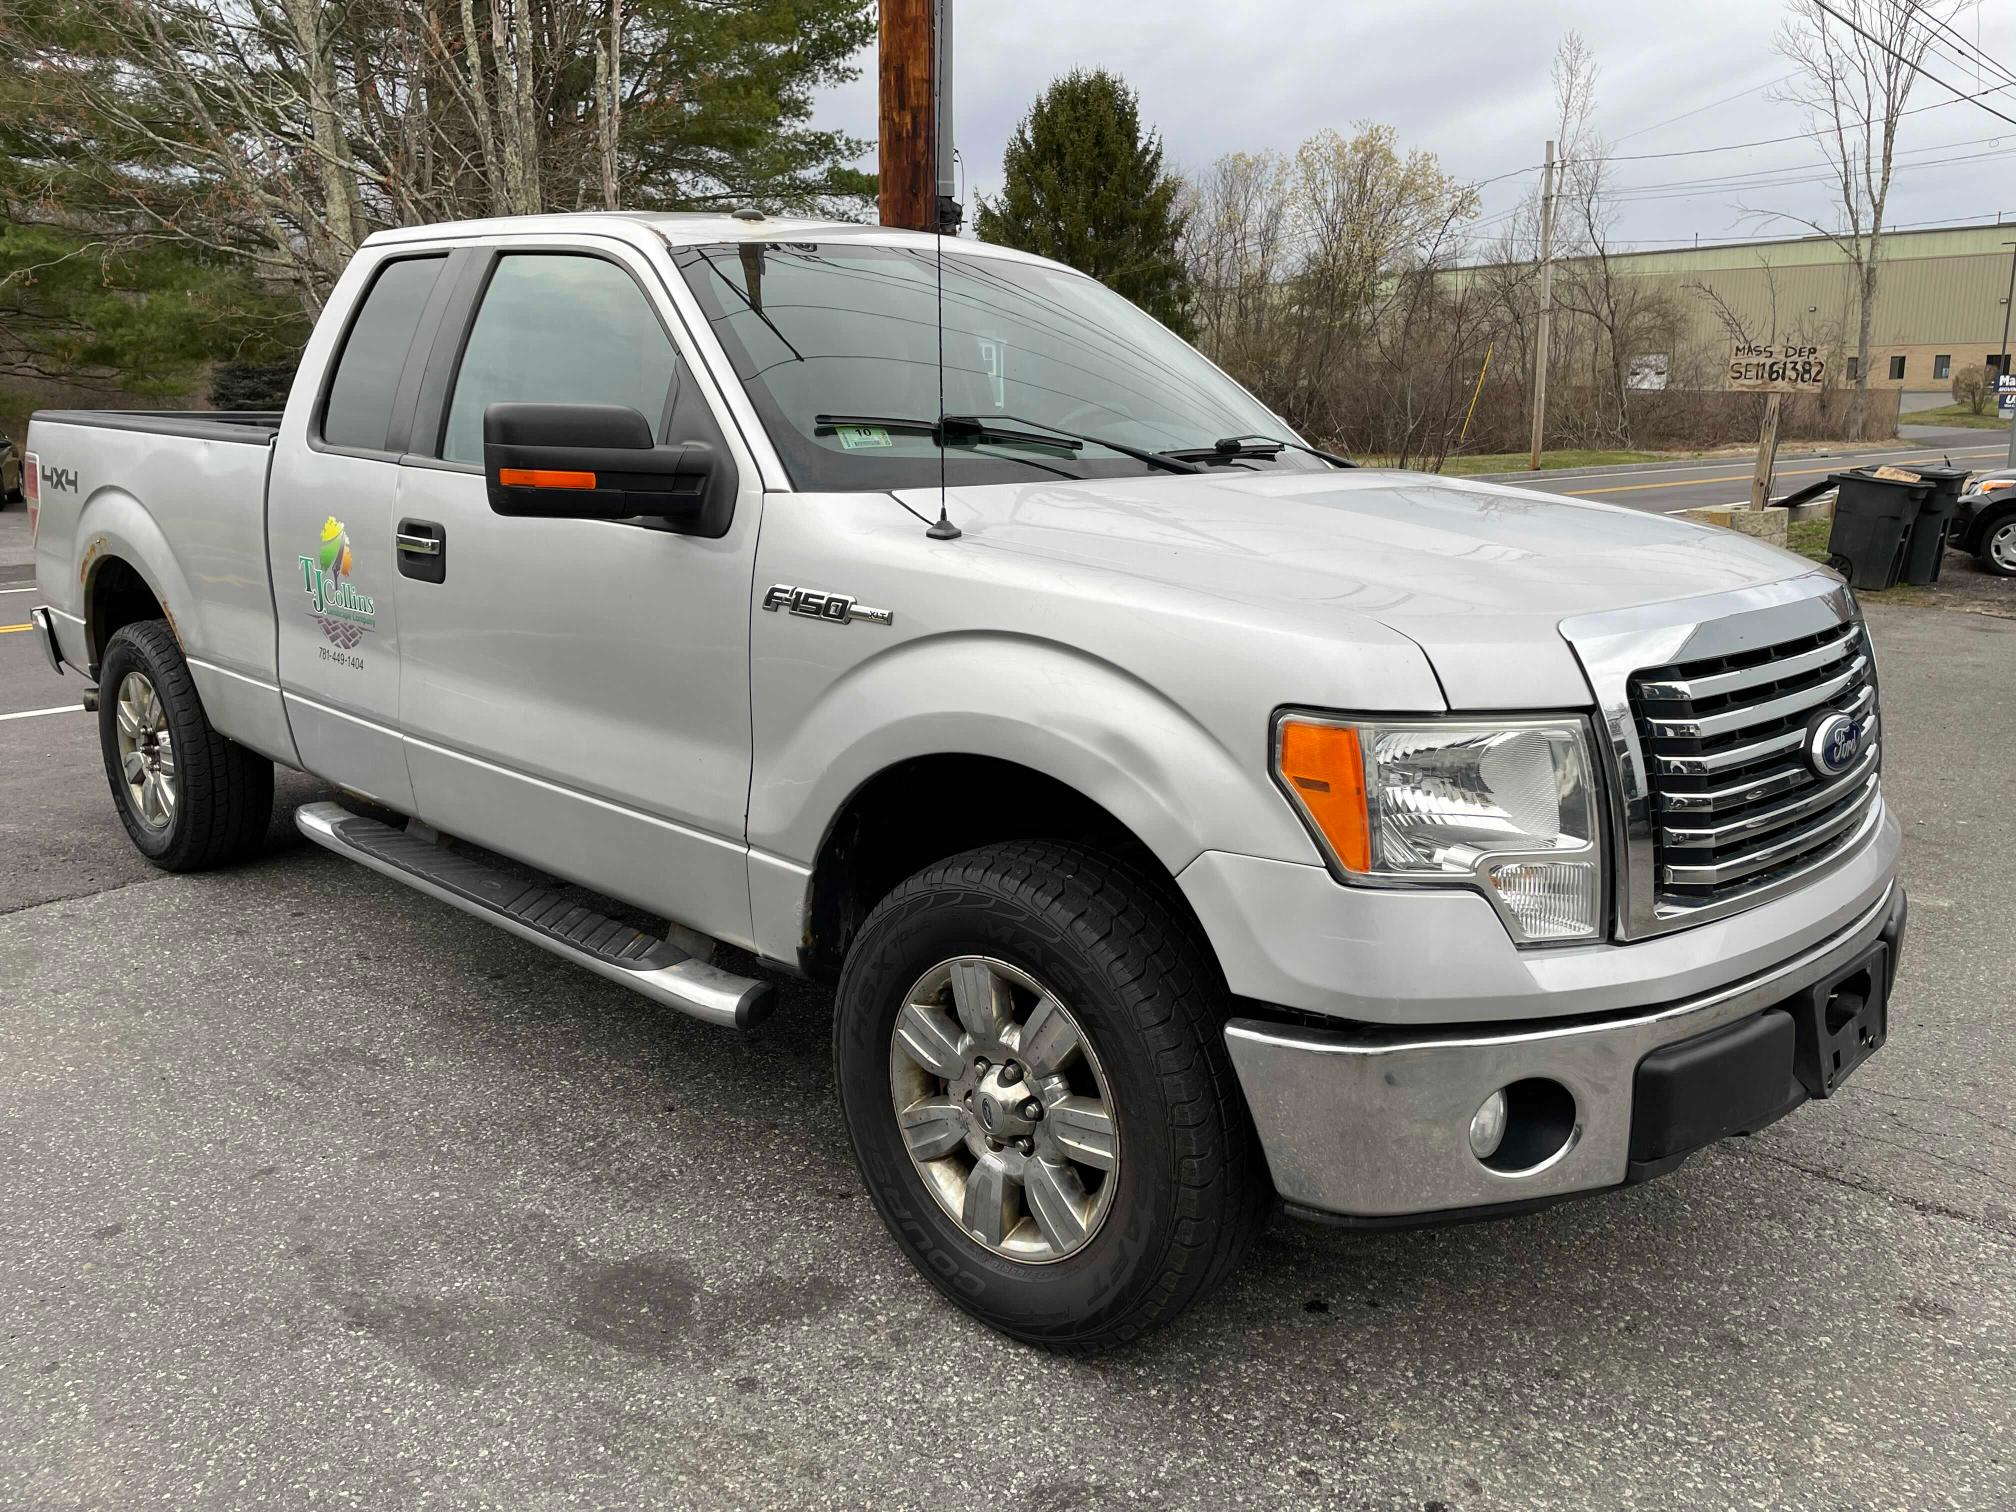 Salvage cars for sale from Copart Mendon, MA: 2010 Ford F150 Super